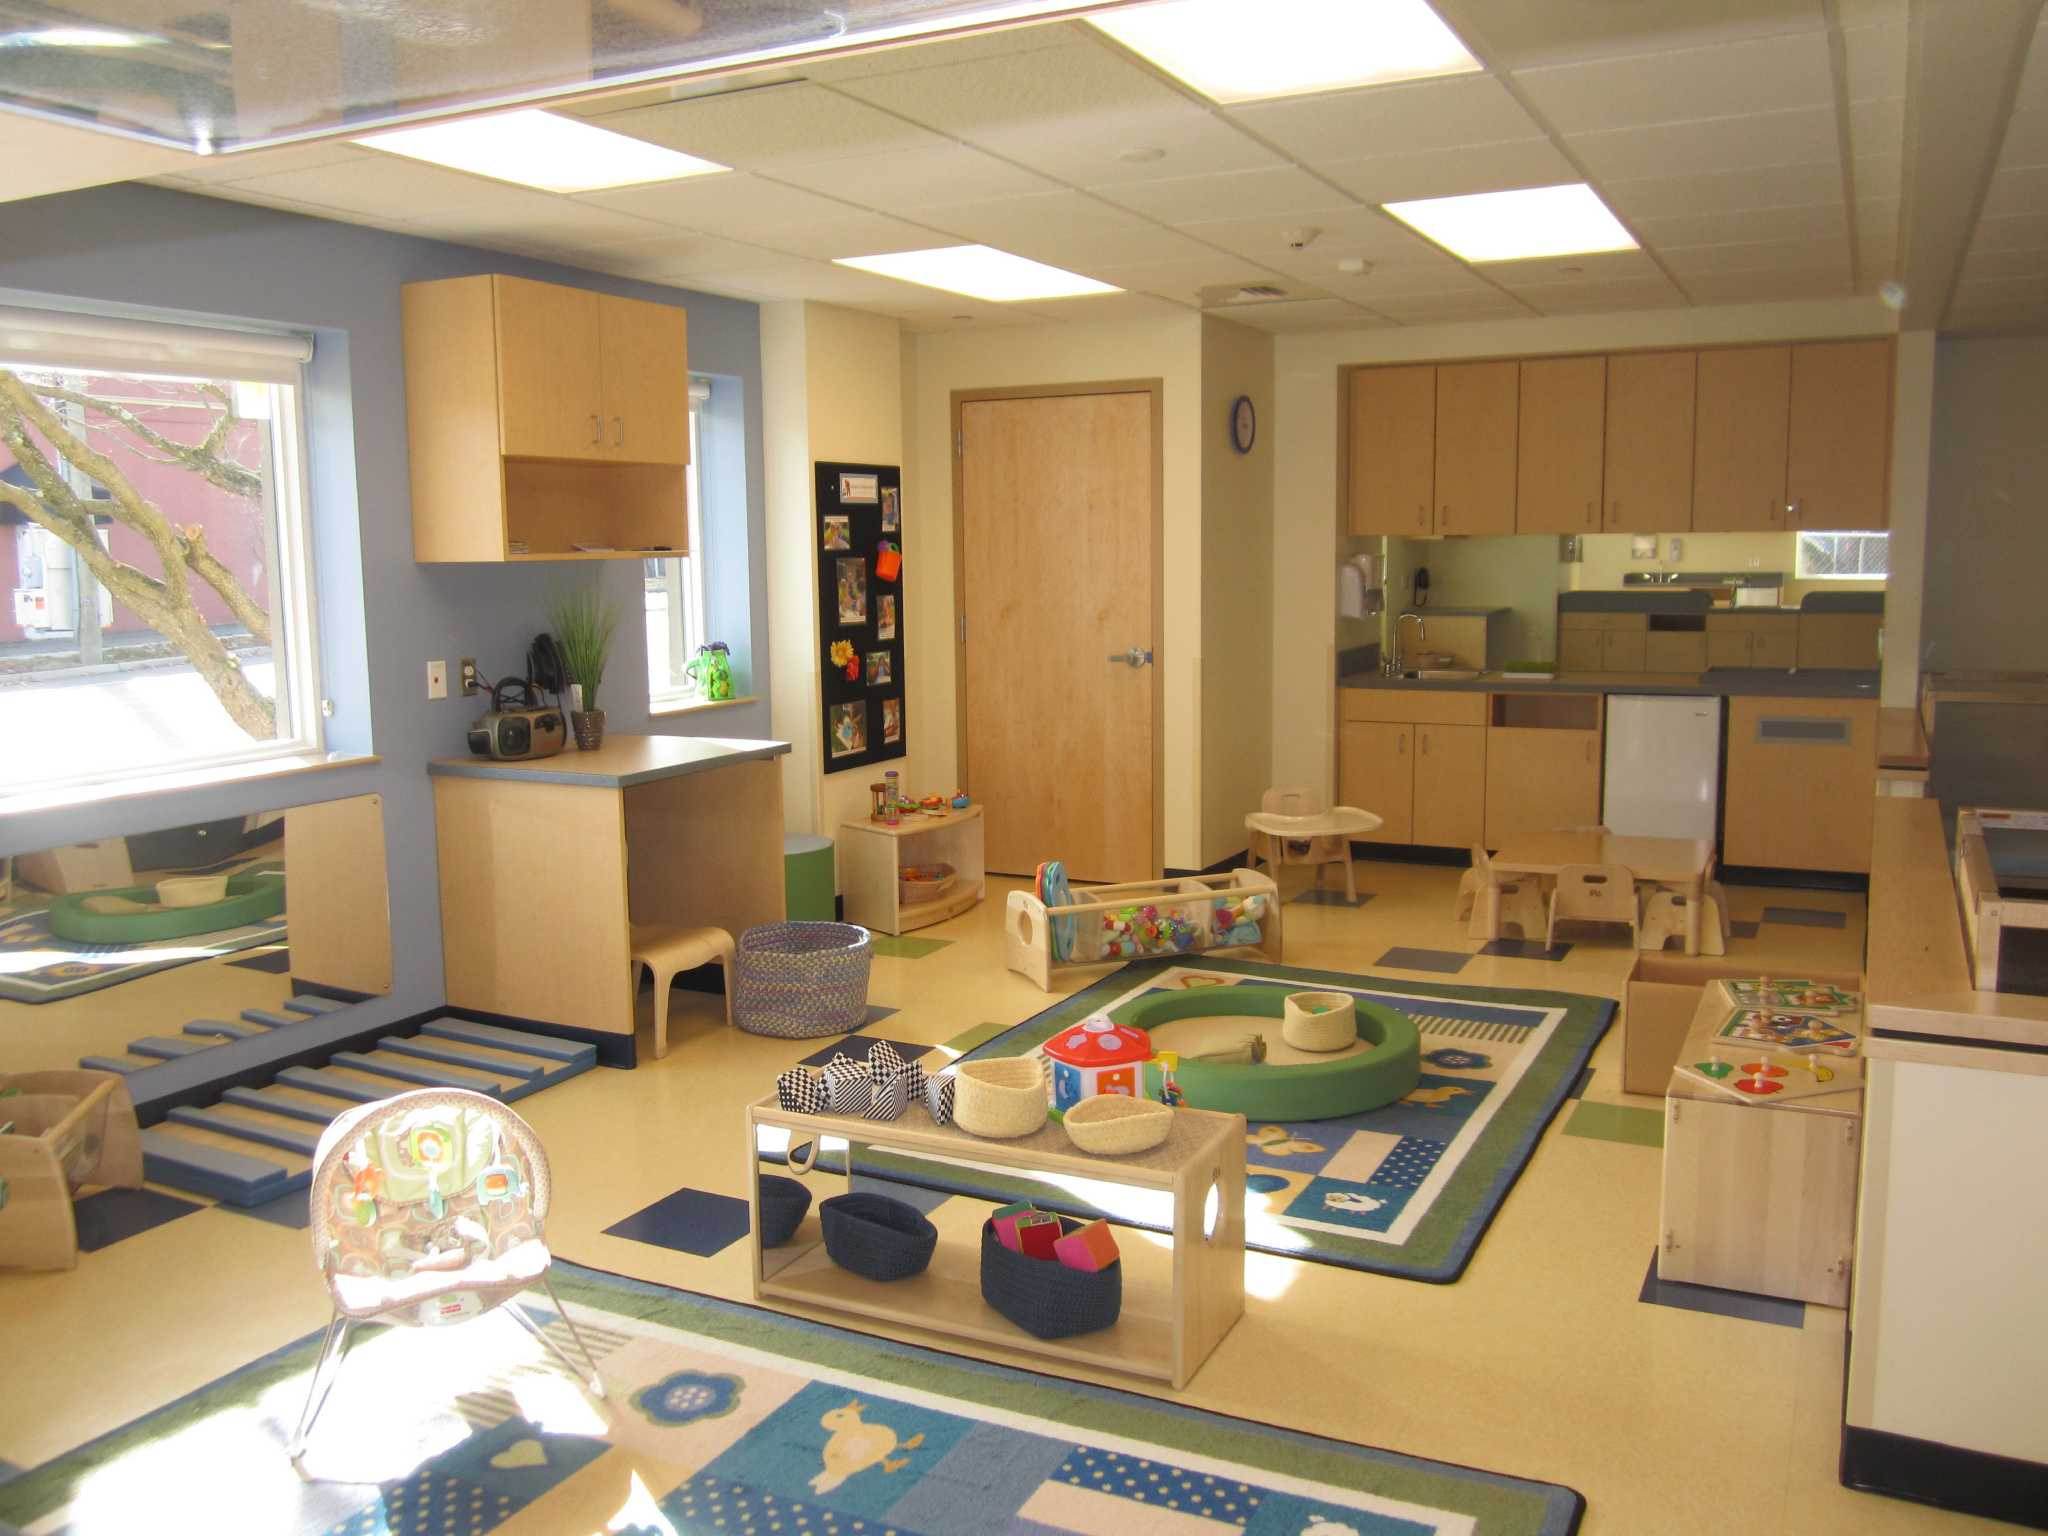 Bright Horizons Child Care Opens New Center In Fairfield